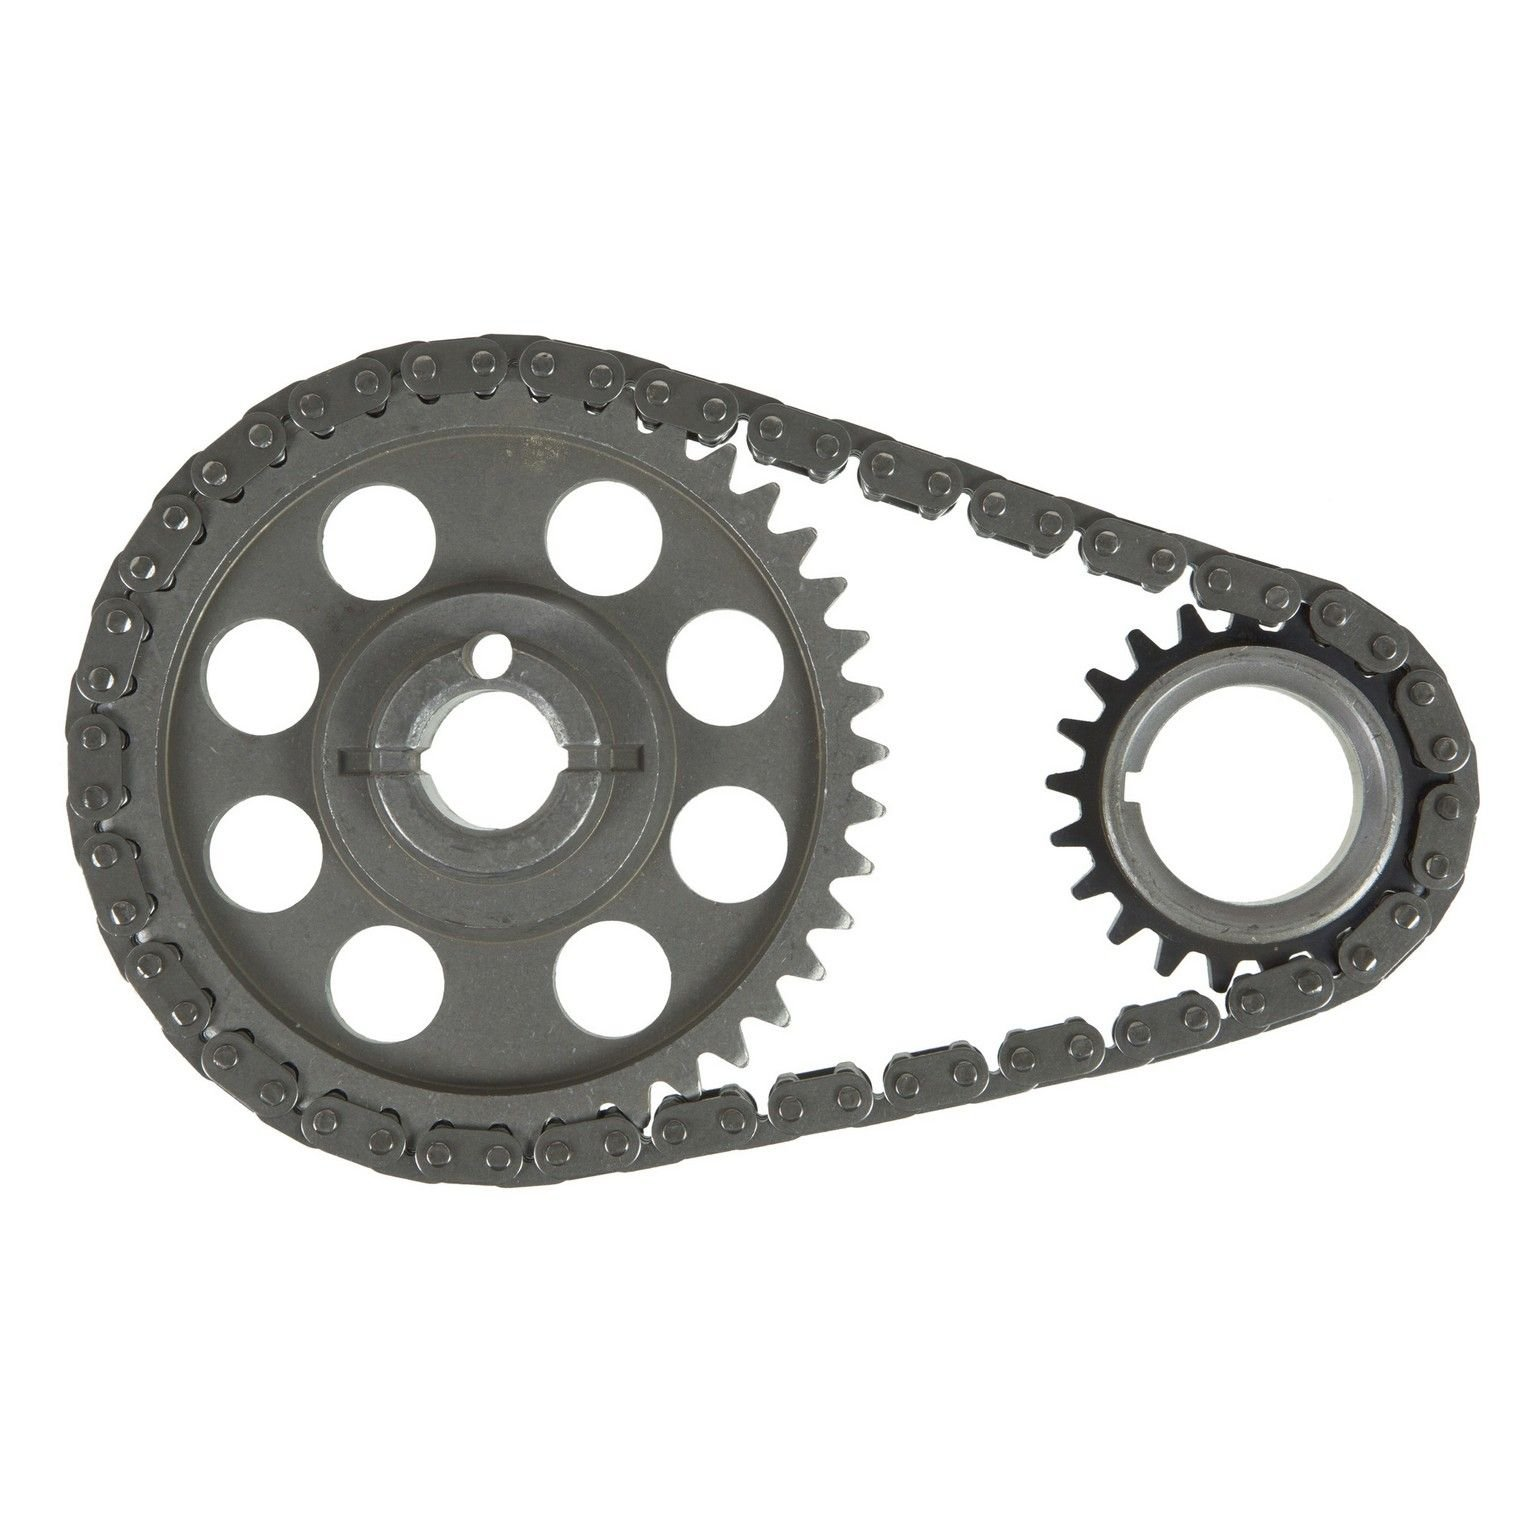 Gmc Sonoma Engine Timing Set Replacement Cloyes Dj Rock Seal Belt 1994 4 Cyl 22l Sealed Power Kt3 370sa Type 3 Pc Includes Silent Chain 1 222 370 223 549